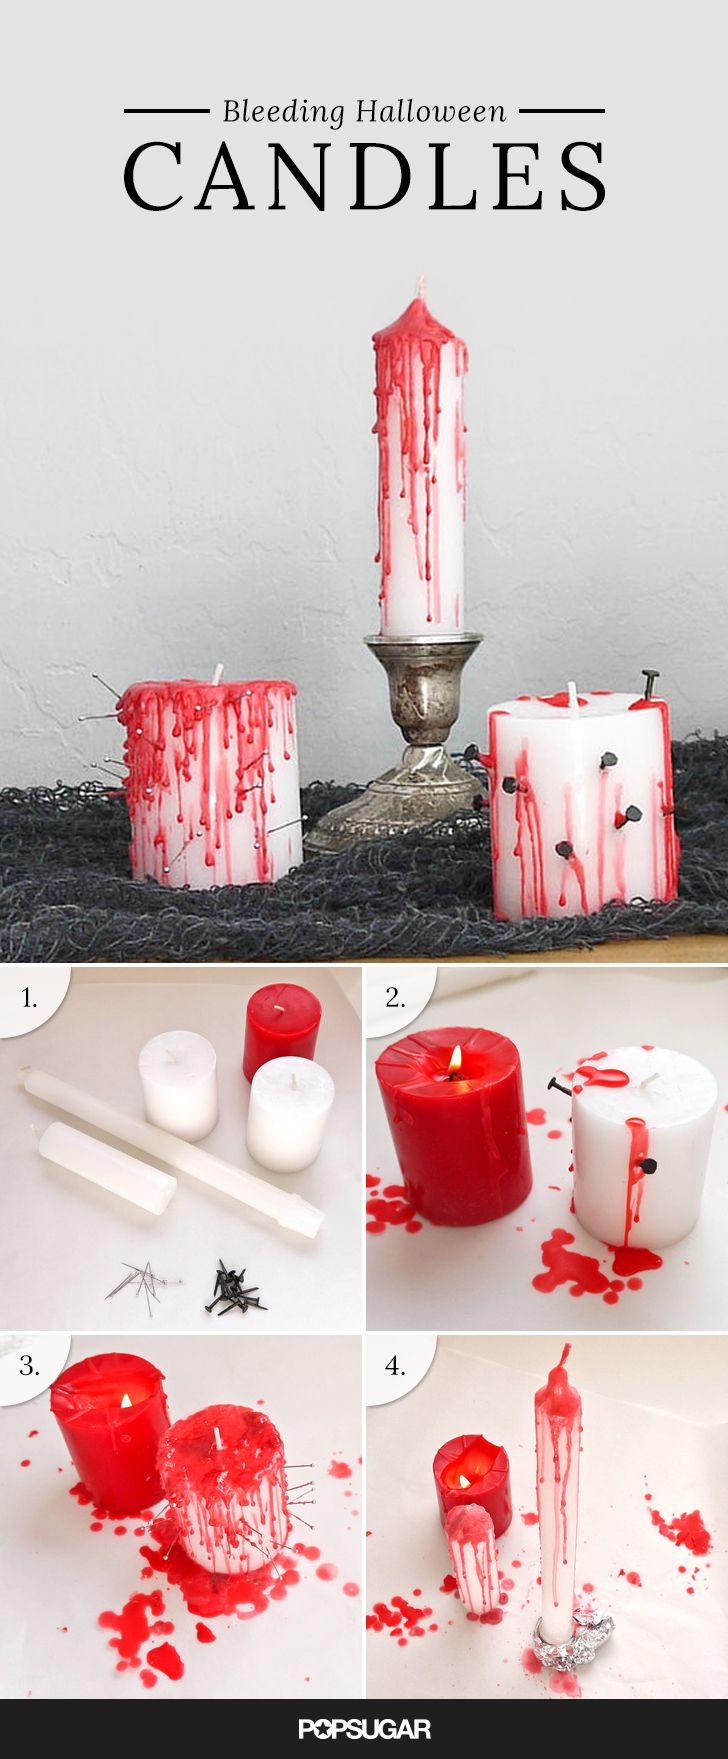 Ideia de DECORAÇÃO: velas sangrentas.   (from: http://www.popsugar.com/smart-living/Bleeding-Halloween-Candles-31560981?crlt.pid=camp.z96xZRNjGt2X)